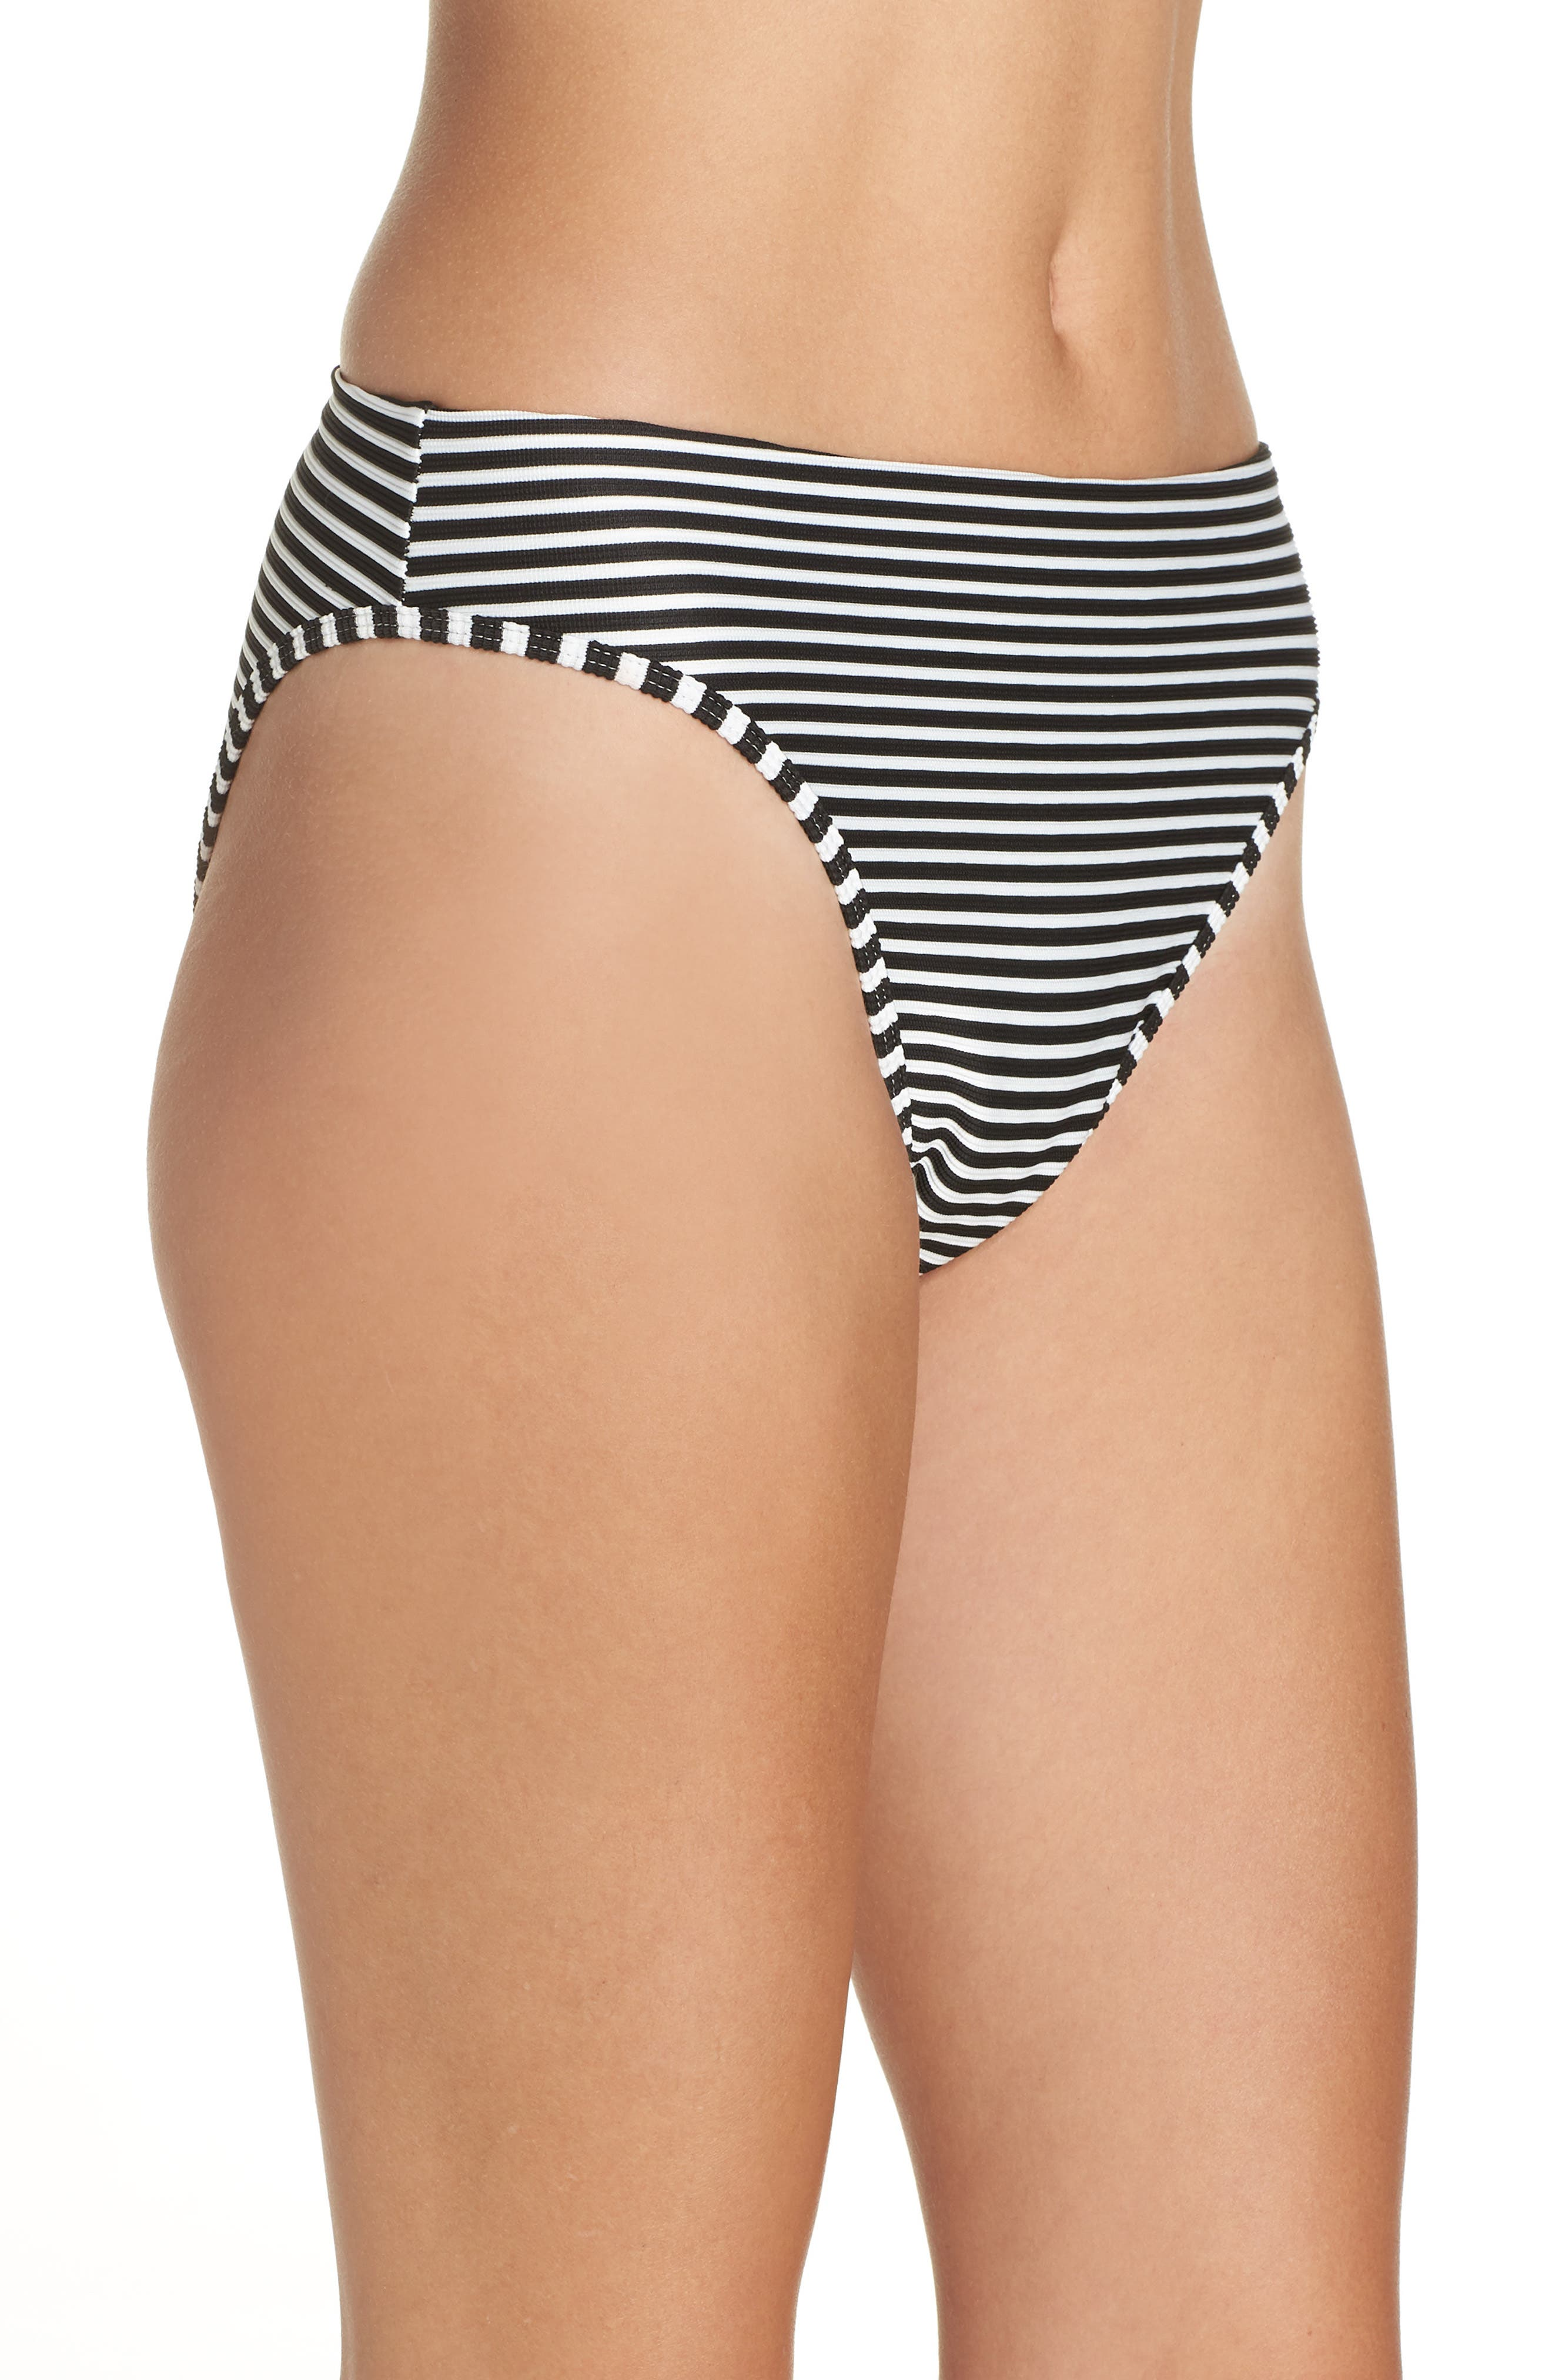 Pierre High Waist Bikini Bottoms,                             Alternate thumbnail 3, color,                             BLACK/ CREAM